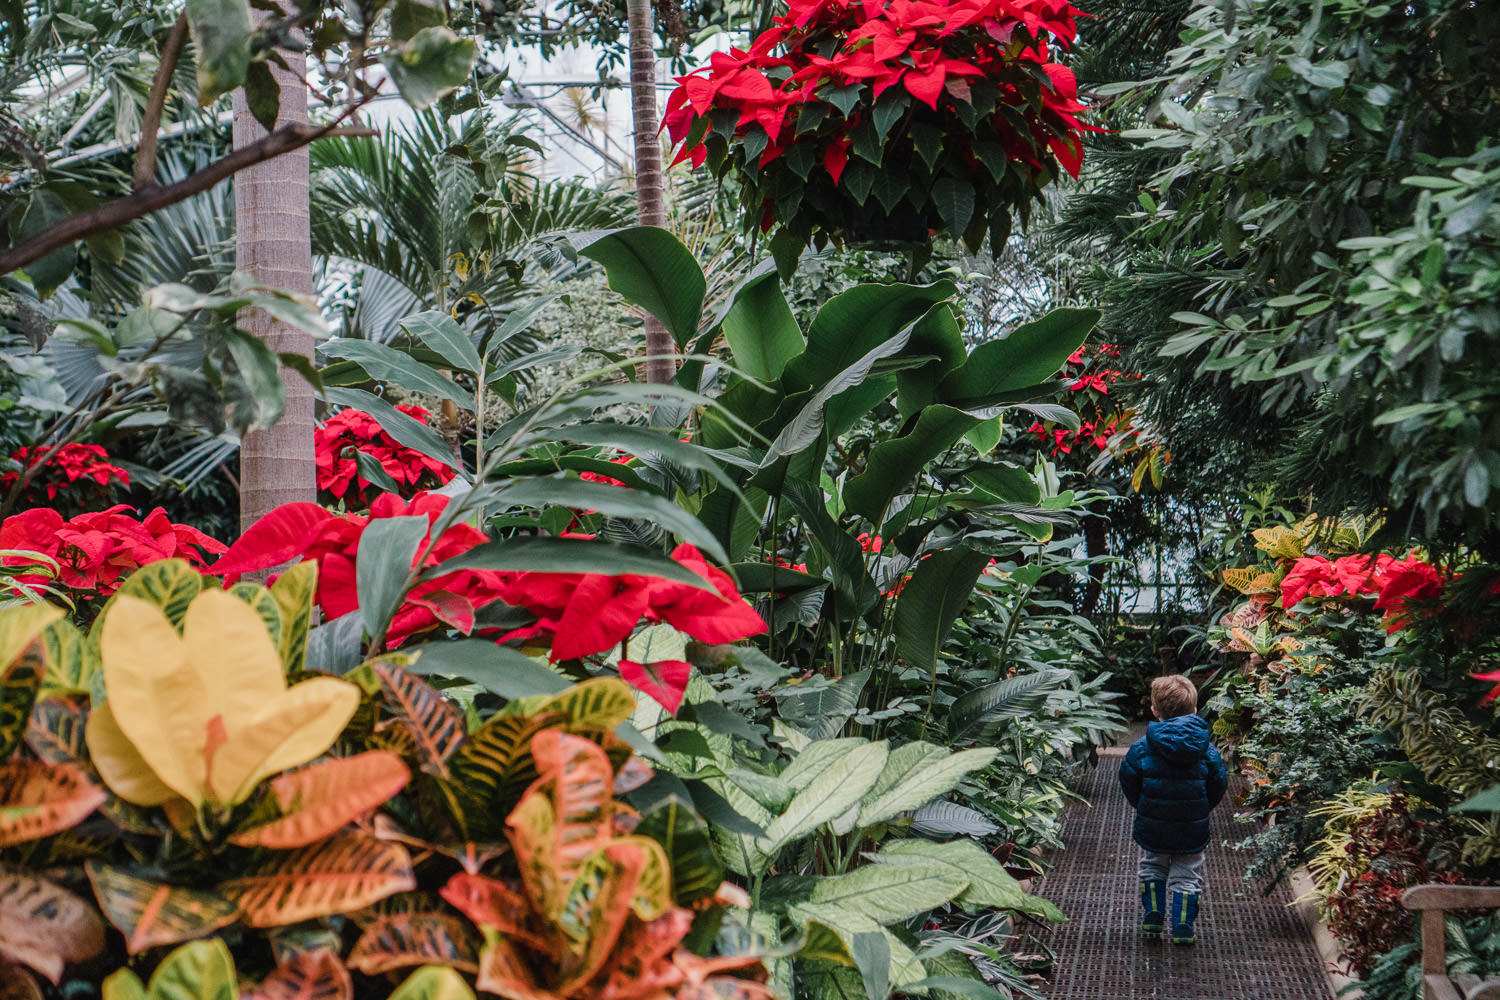 A little boy walks through the poinsettia display at Planting Fields.